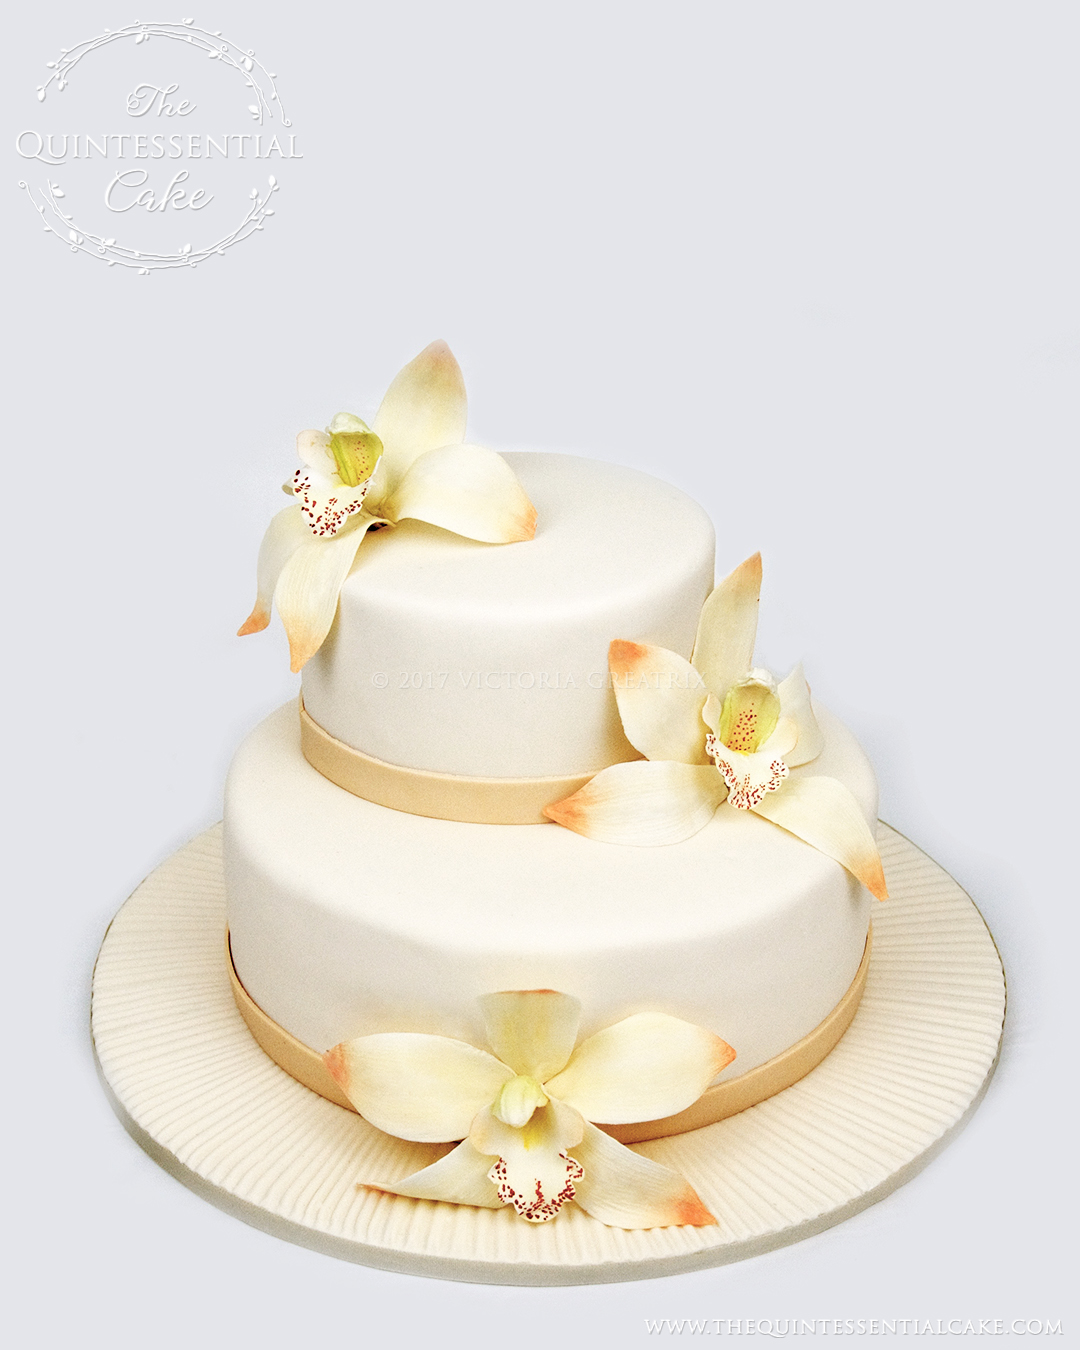 Small Wedding Cakes.Small Wedding Cake With Sugar Orchids The Quintessential Cake